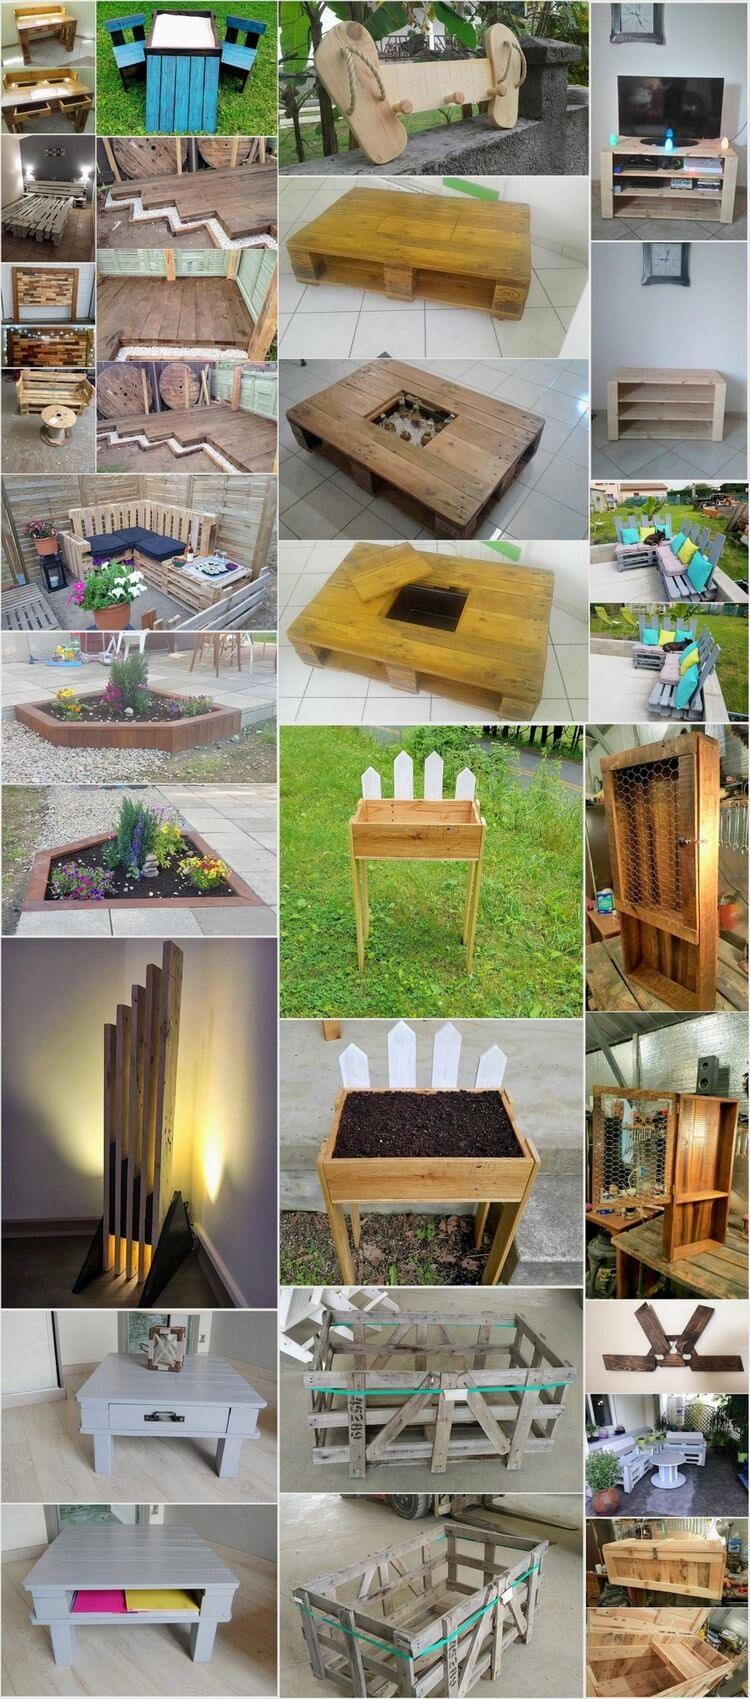 Exciting Ways to Reuse Old Shipping Pallets